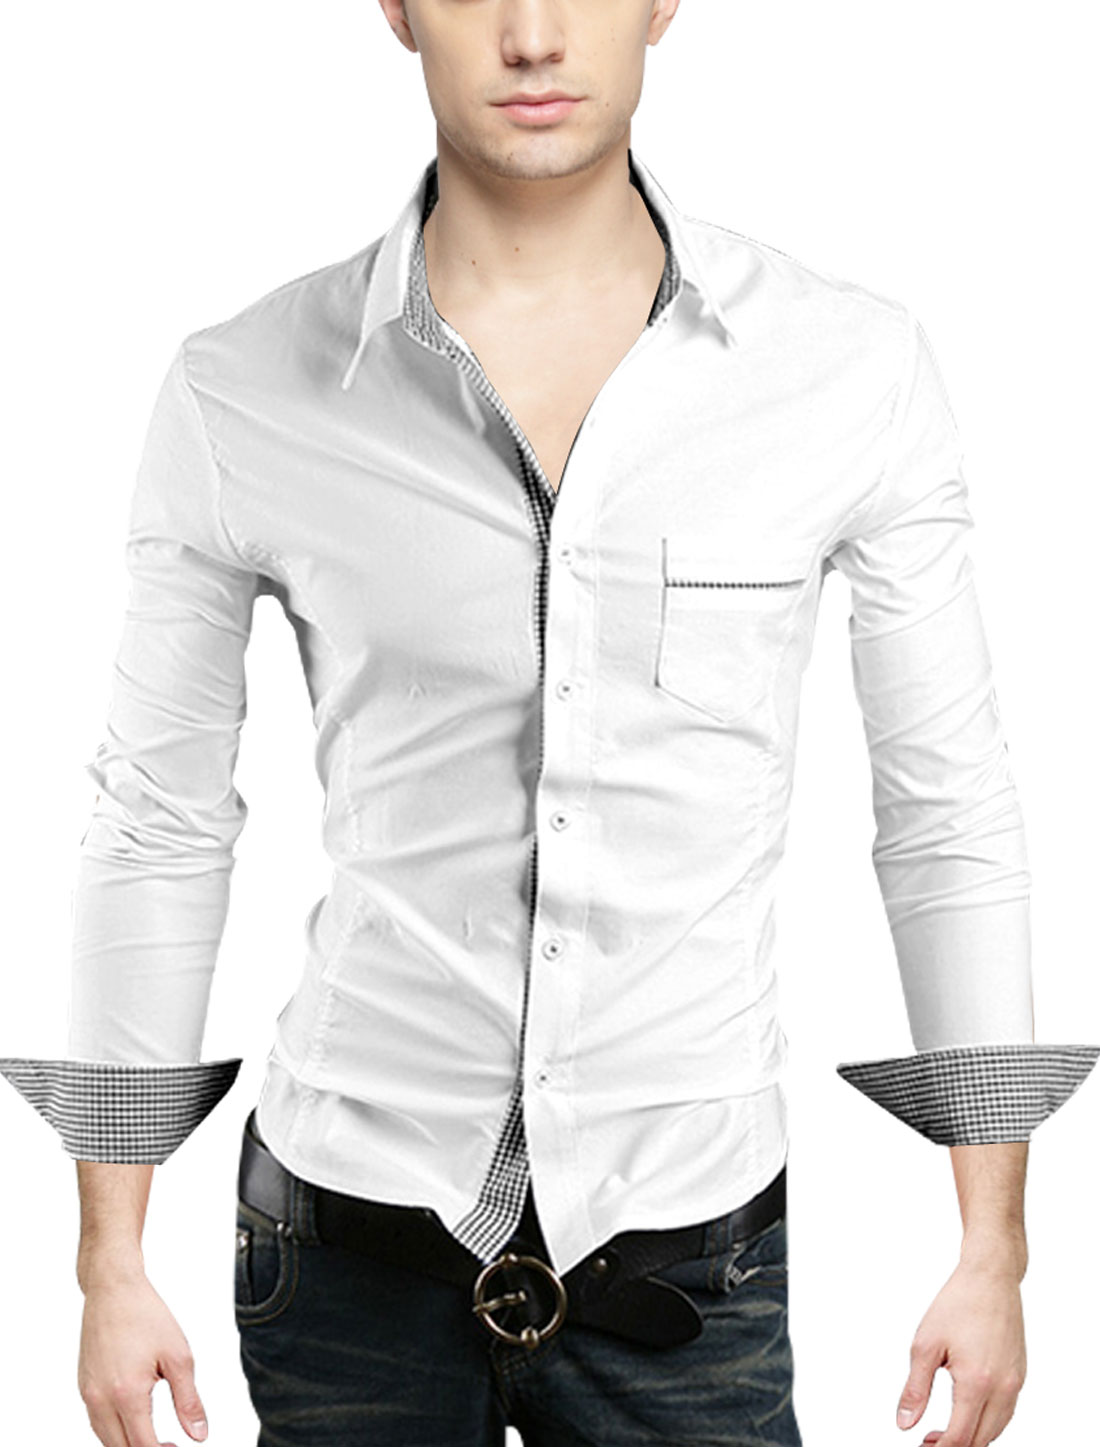 Men Point Collar Plaids Detail Single Breasted Gentleman Shirt White M